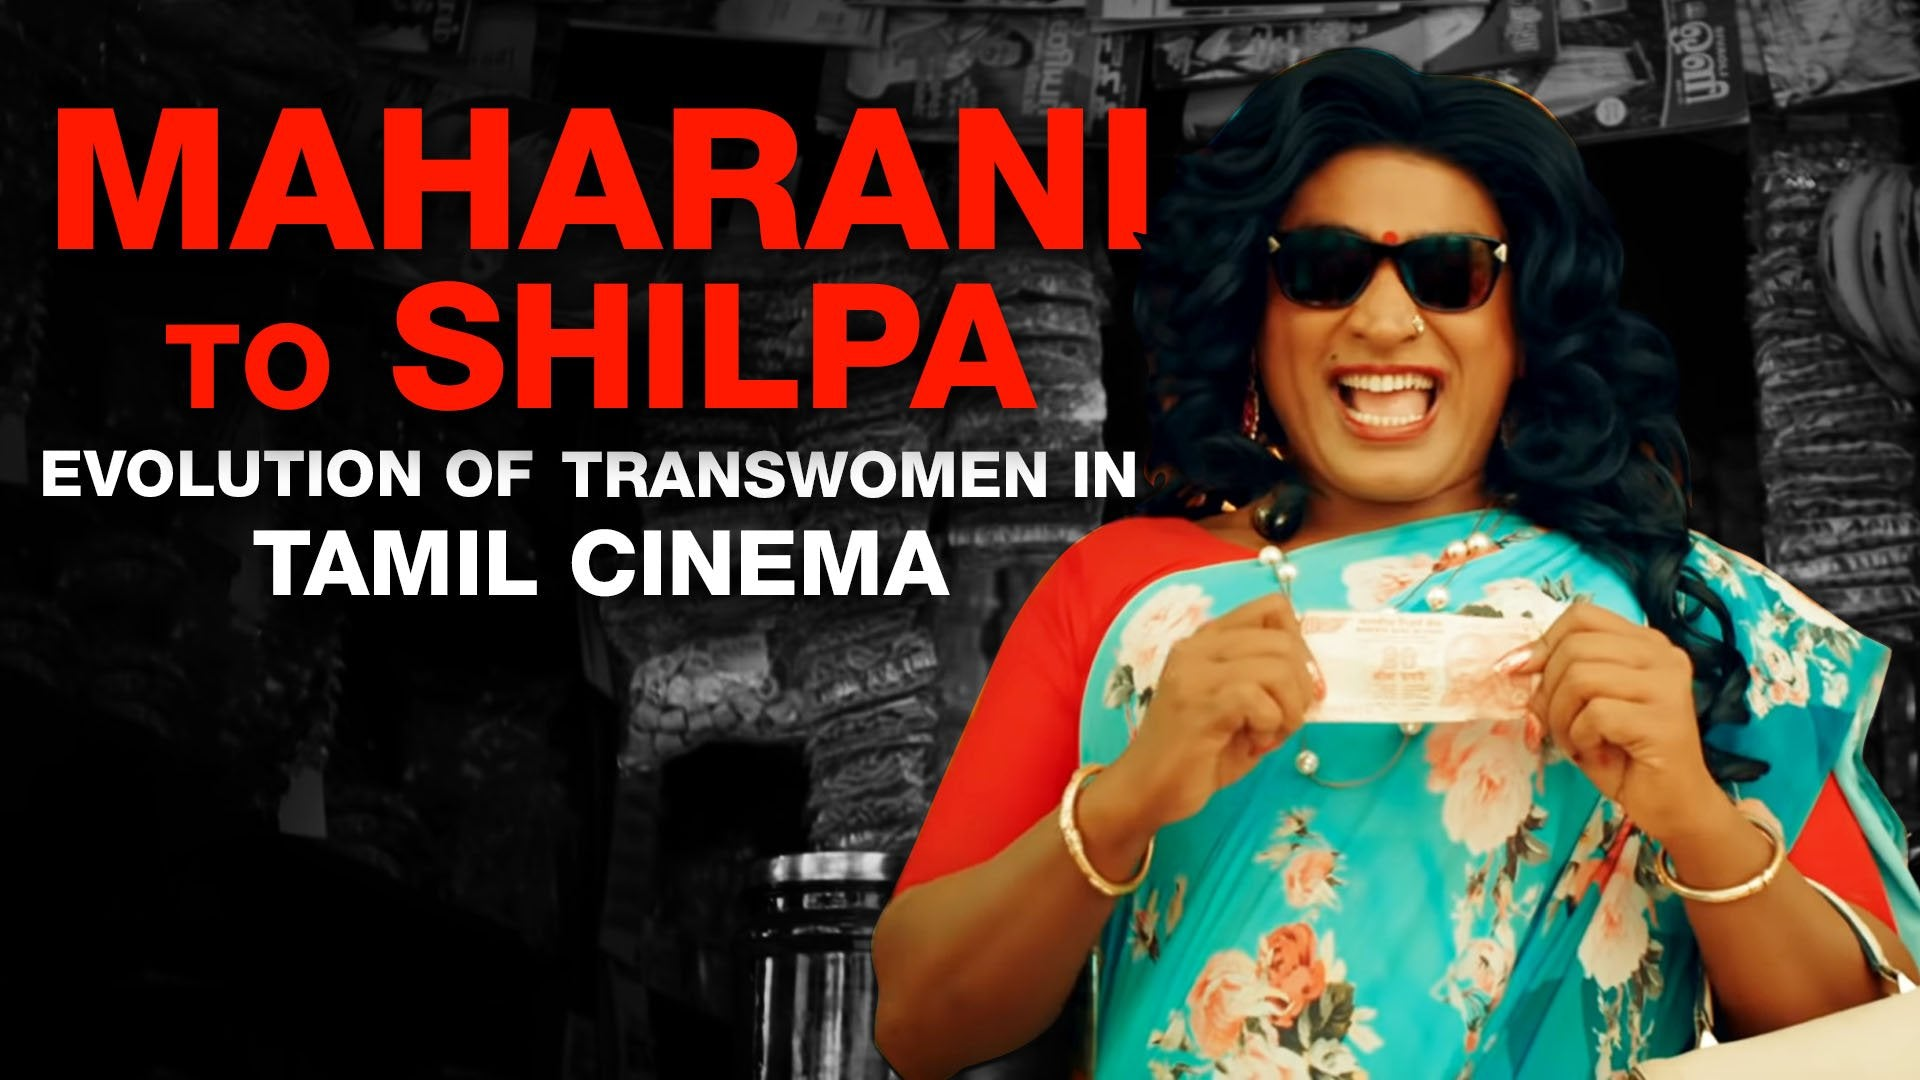 MAHARANI TO SHILPA - EVOLUTION OF TRANSWOMEN IN TAMIL CINEMA